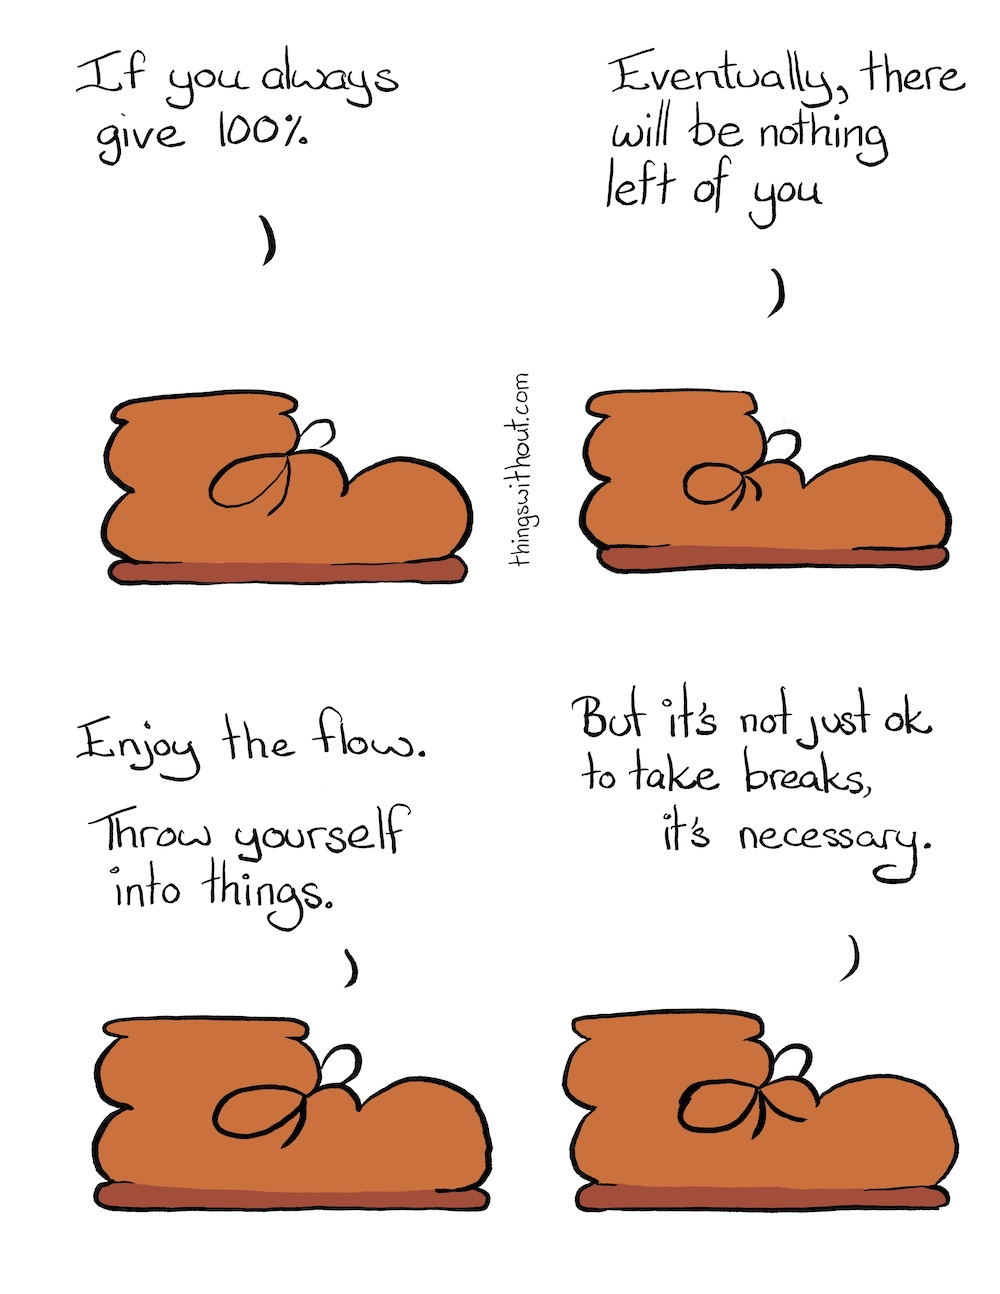 It's OK to Take Breaks Comic Transcript Boot is a brown work boot. Boot: If you always give 100%. Boot: Eventually, there will be nothing left of you. Boot: Enjoy the flow. Throw yourself into things. Boot: But it's not just ok to take breaks, it's necessary.